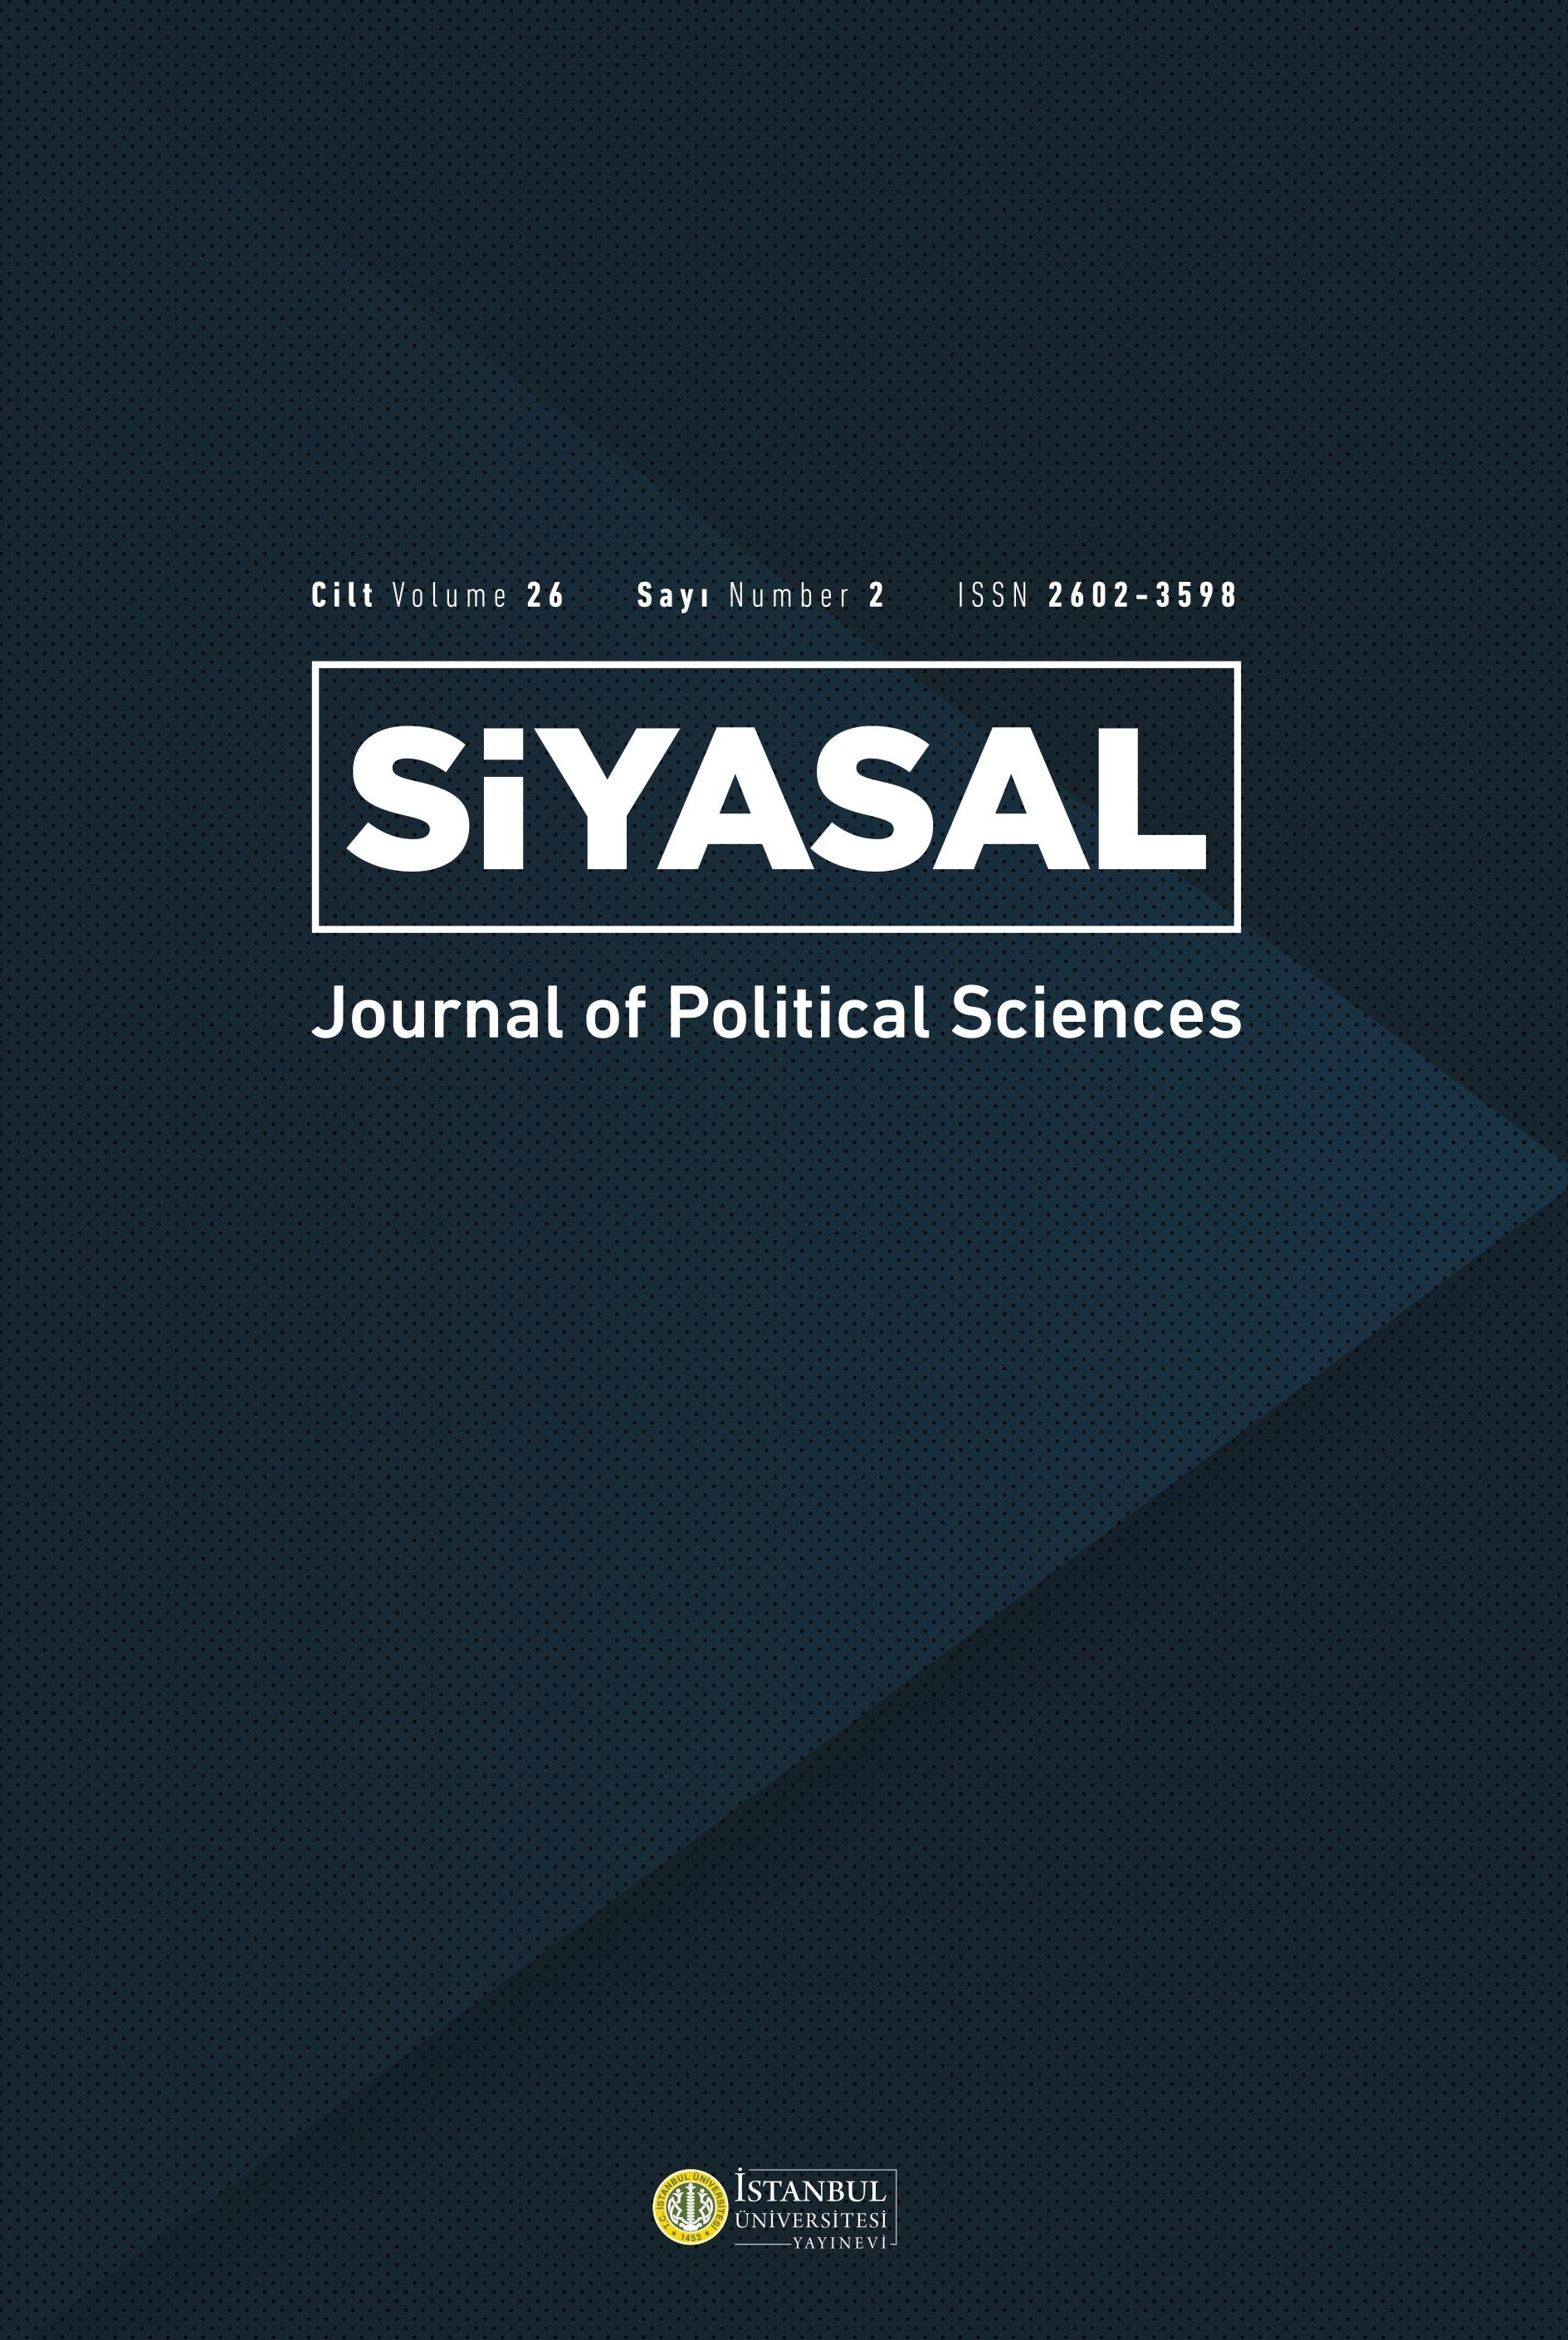 SİYASAL / Journal of Political Sciences